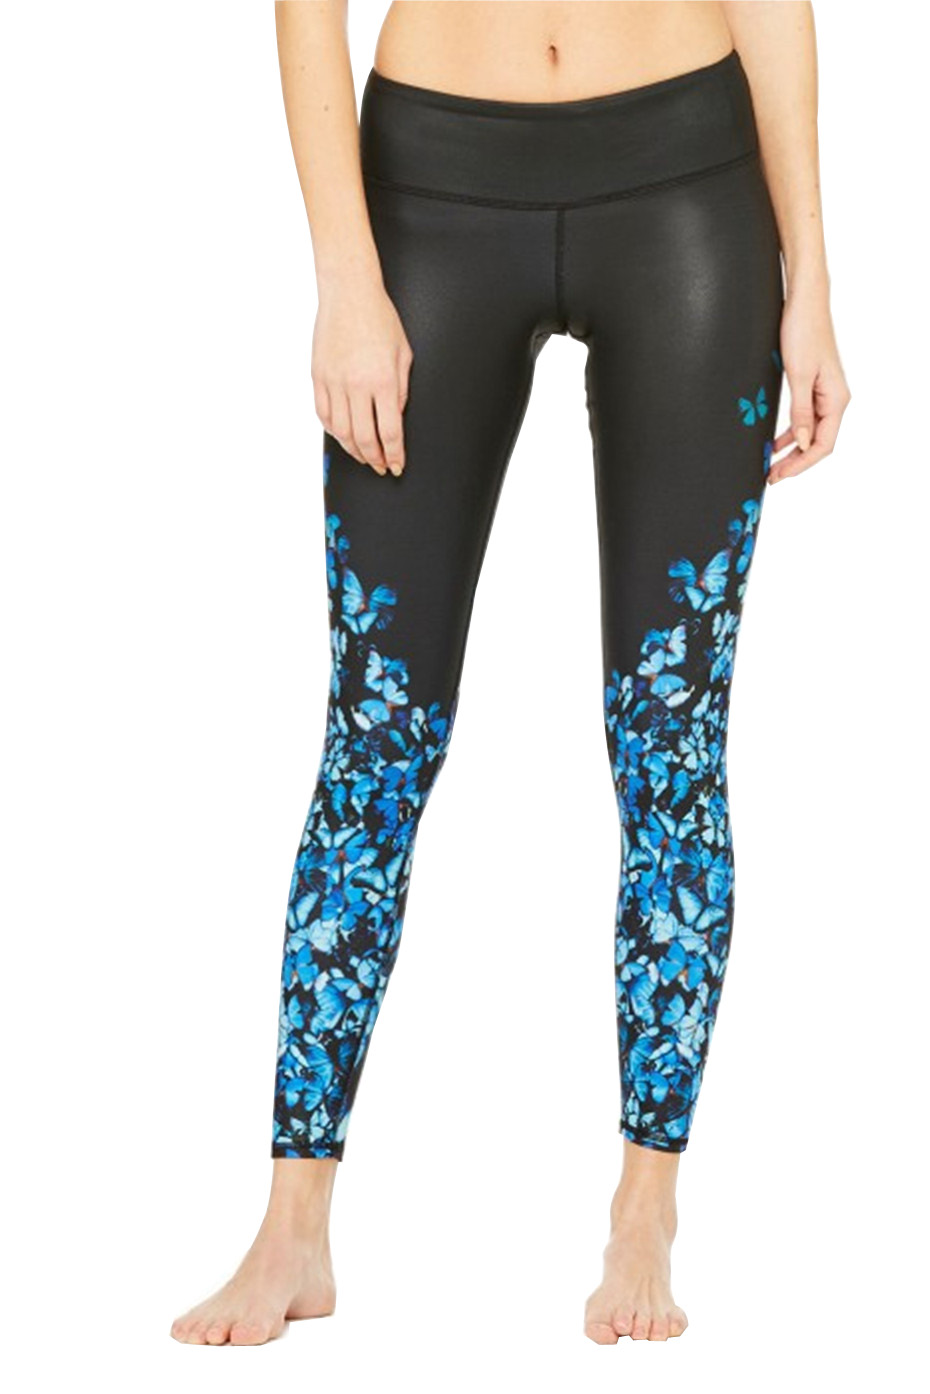 3D Butterfly Printing Professional Yoya Leggings Quick Dry Women Sports Pants Quality Fitness Legging Running Tights(China (Mainland))